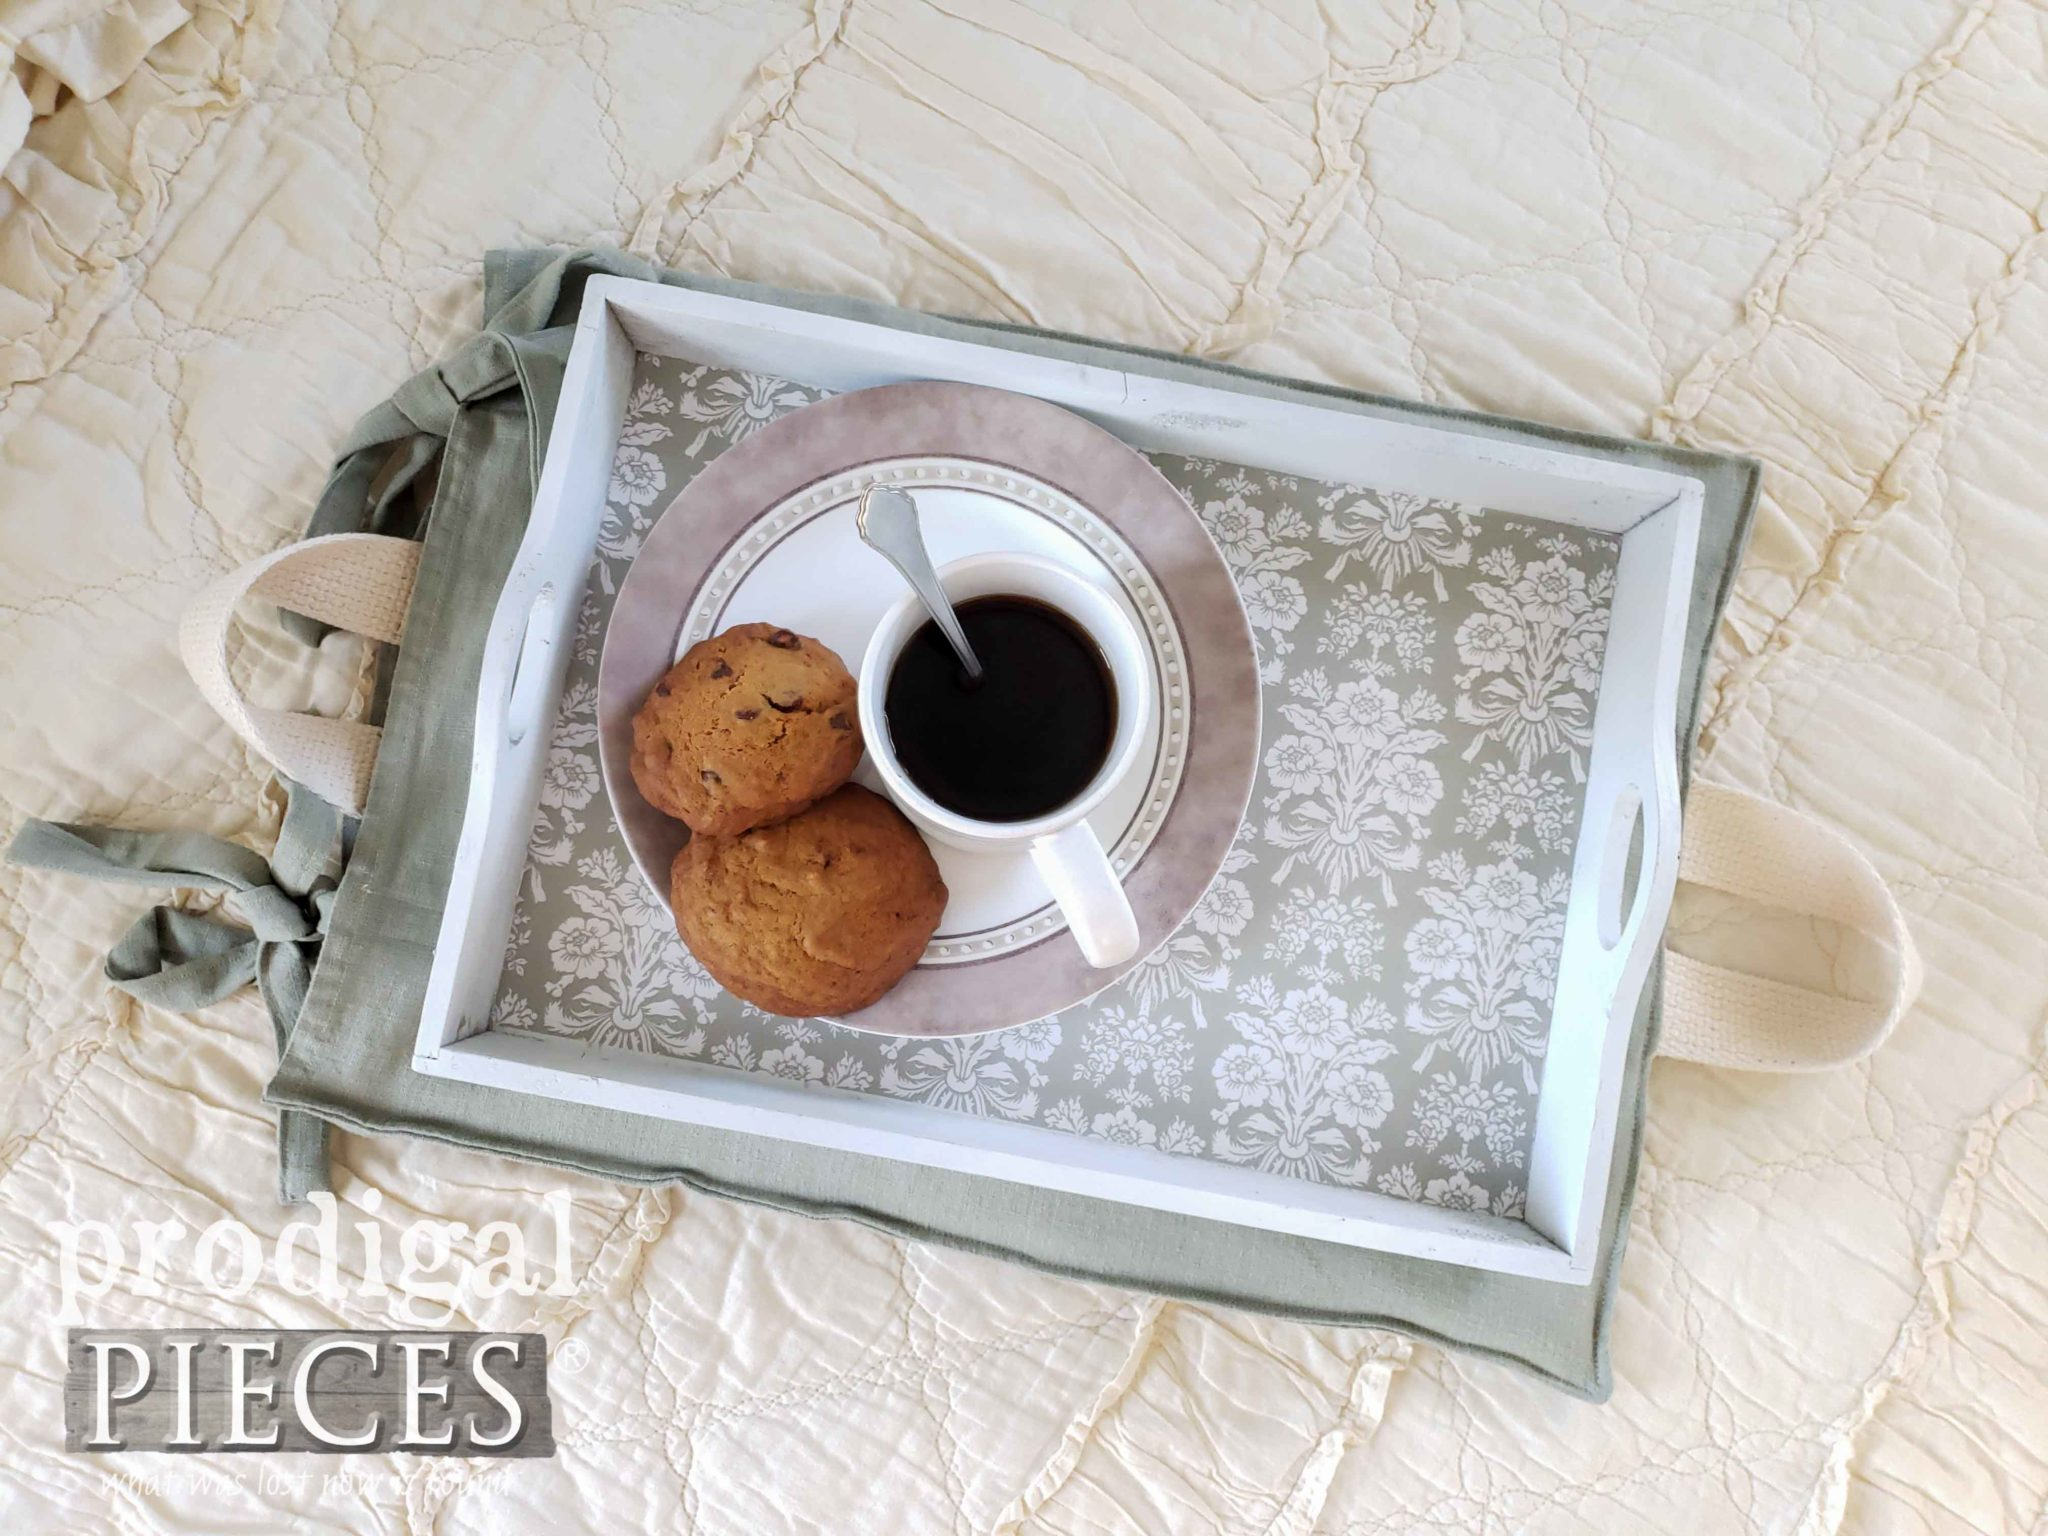 Beautiful Upcycled Christmas Tray into Home Decor with Heated Pillow by Larissa of Prodigal Pieces | prodigalpieces.com #prodigalpieces #diy #handmade #home #homedecor #homedecorideas #farmhouse